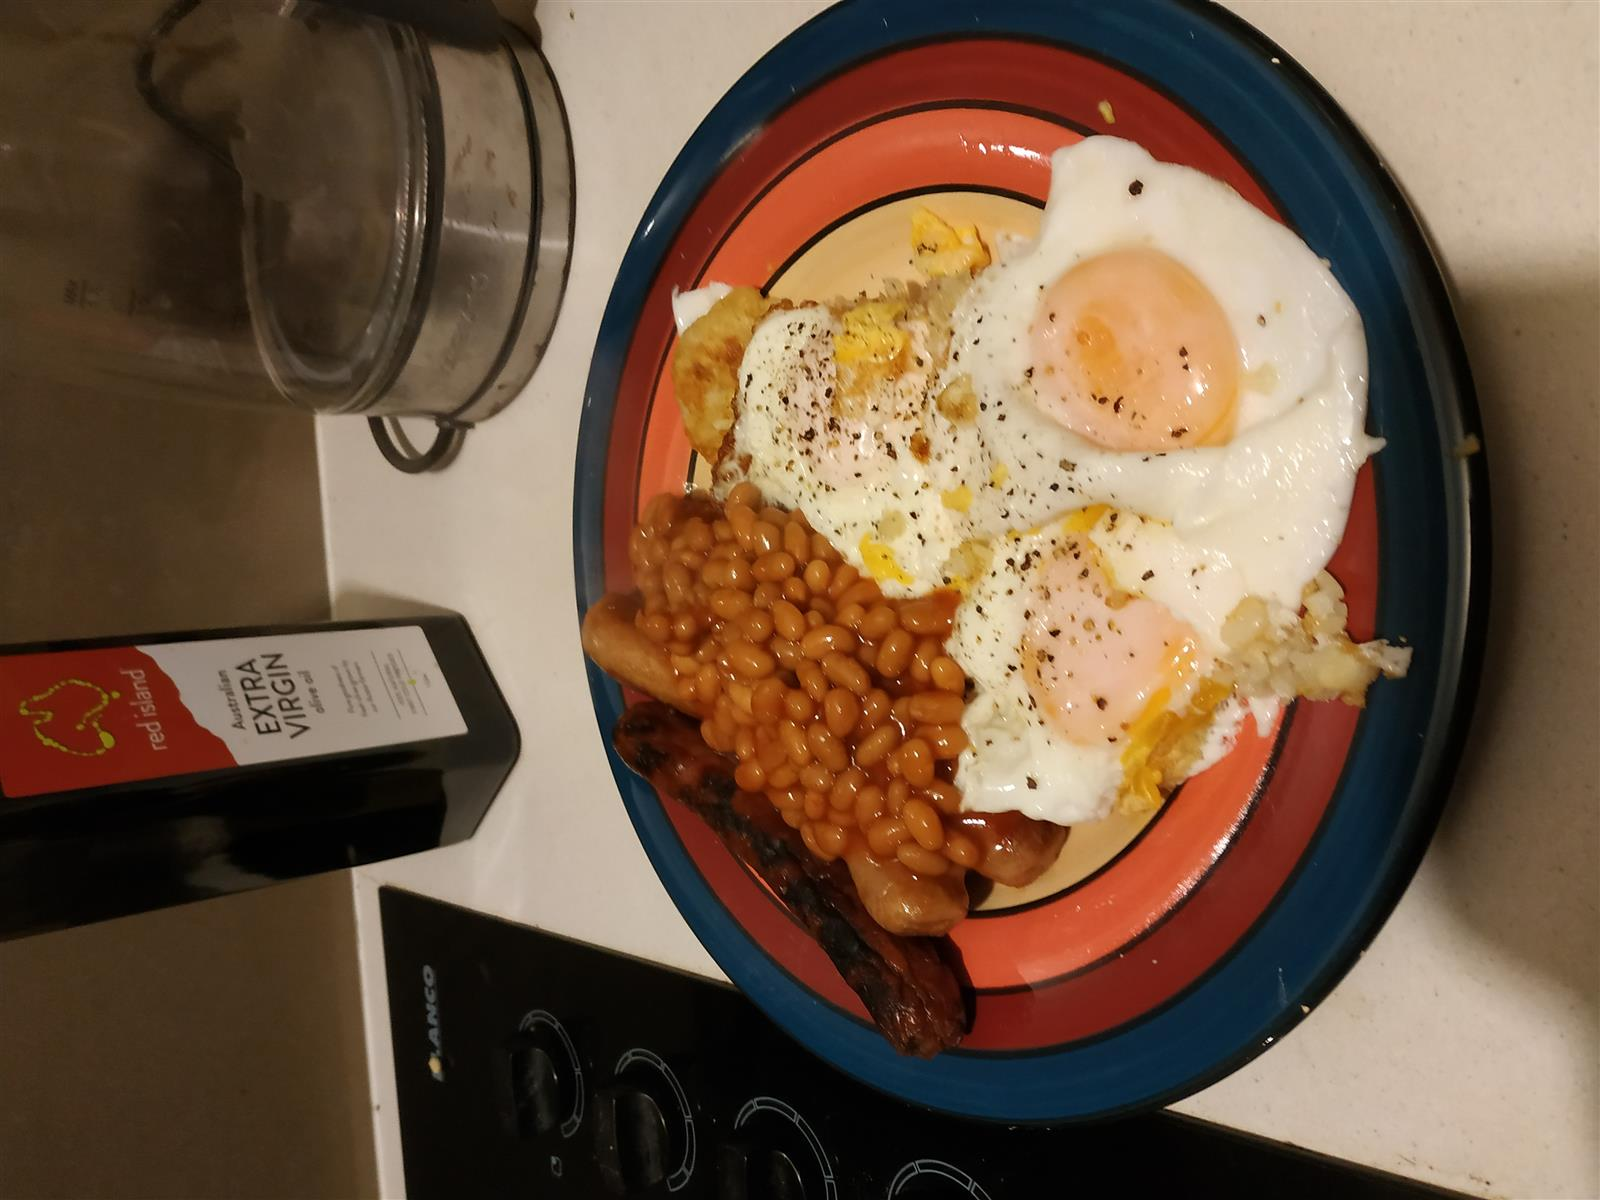 The Best Breakfast in the World Step by Step.: the Full English-img_20210606_220002-jpg